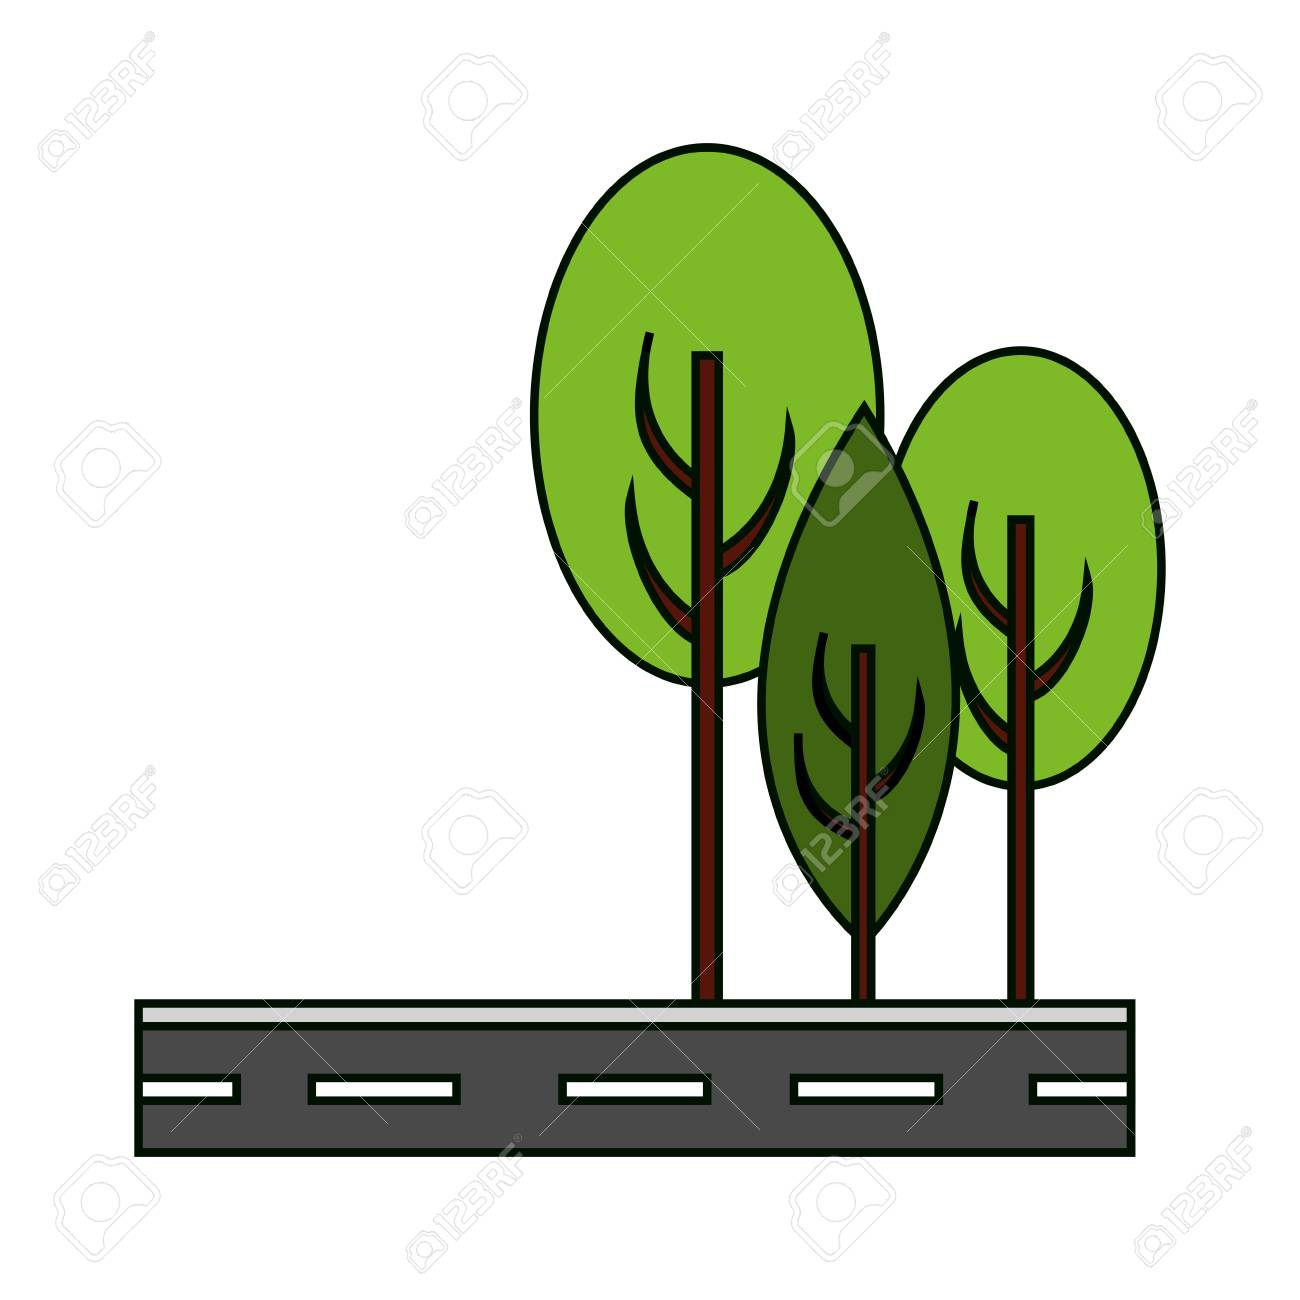 street and trees icon way city urban and architecture theme rh 123rf com